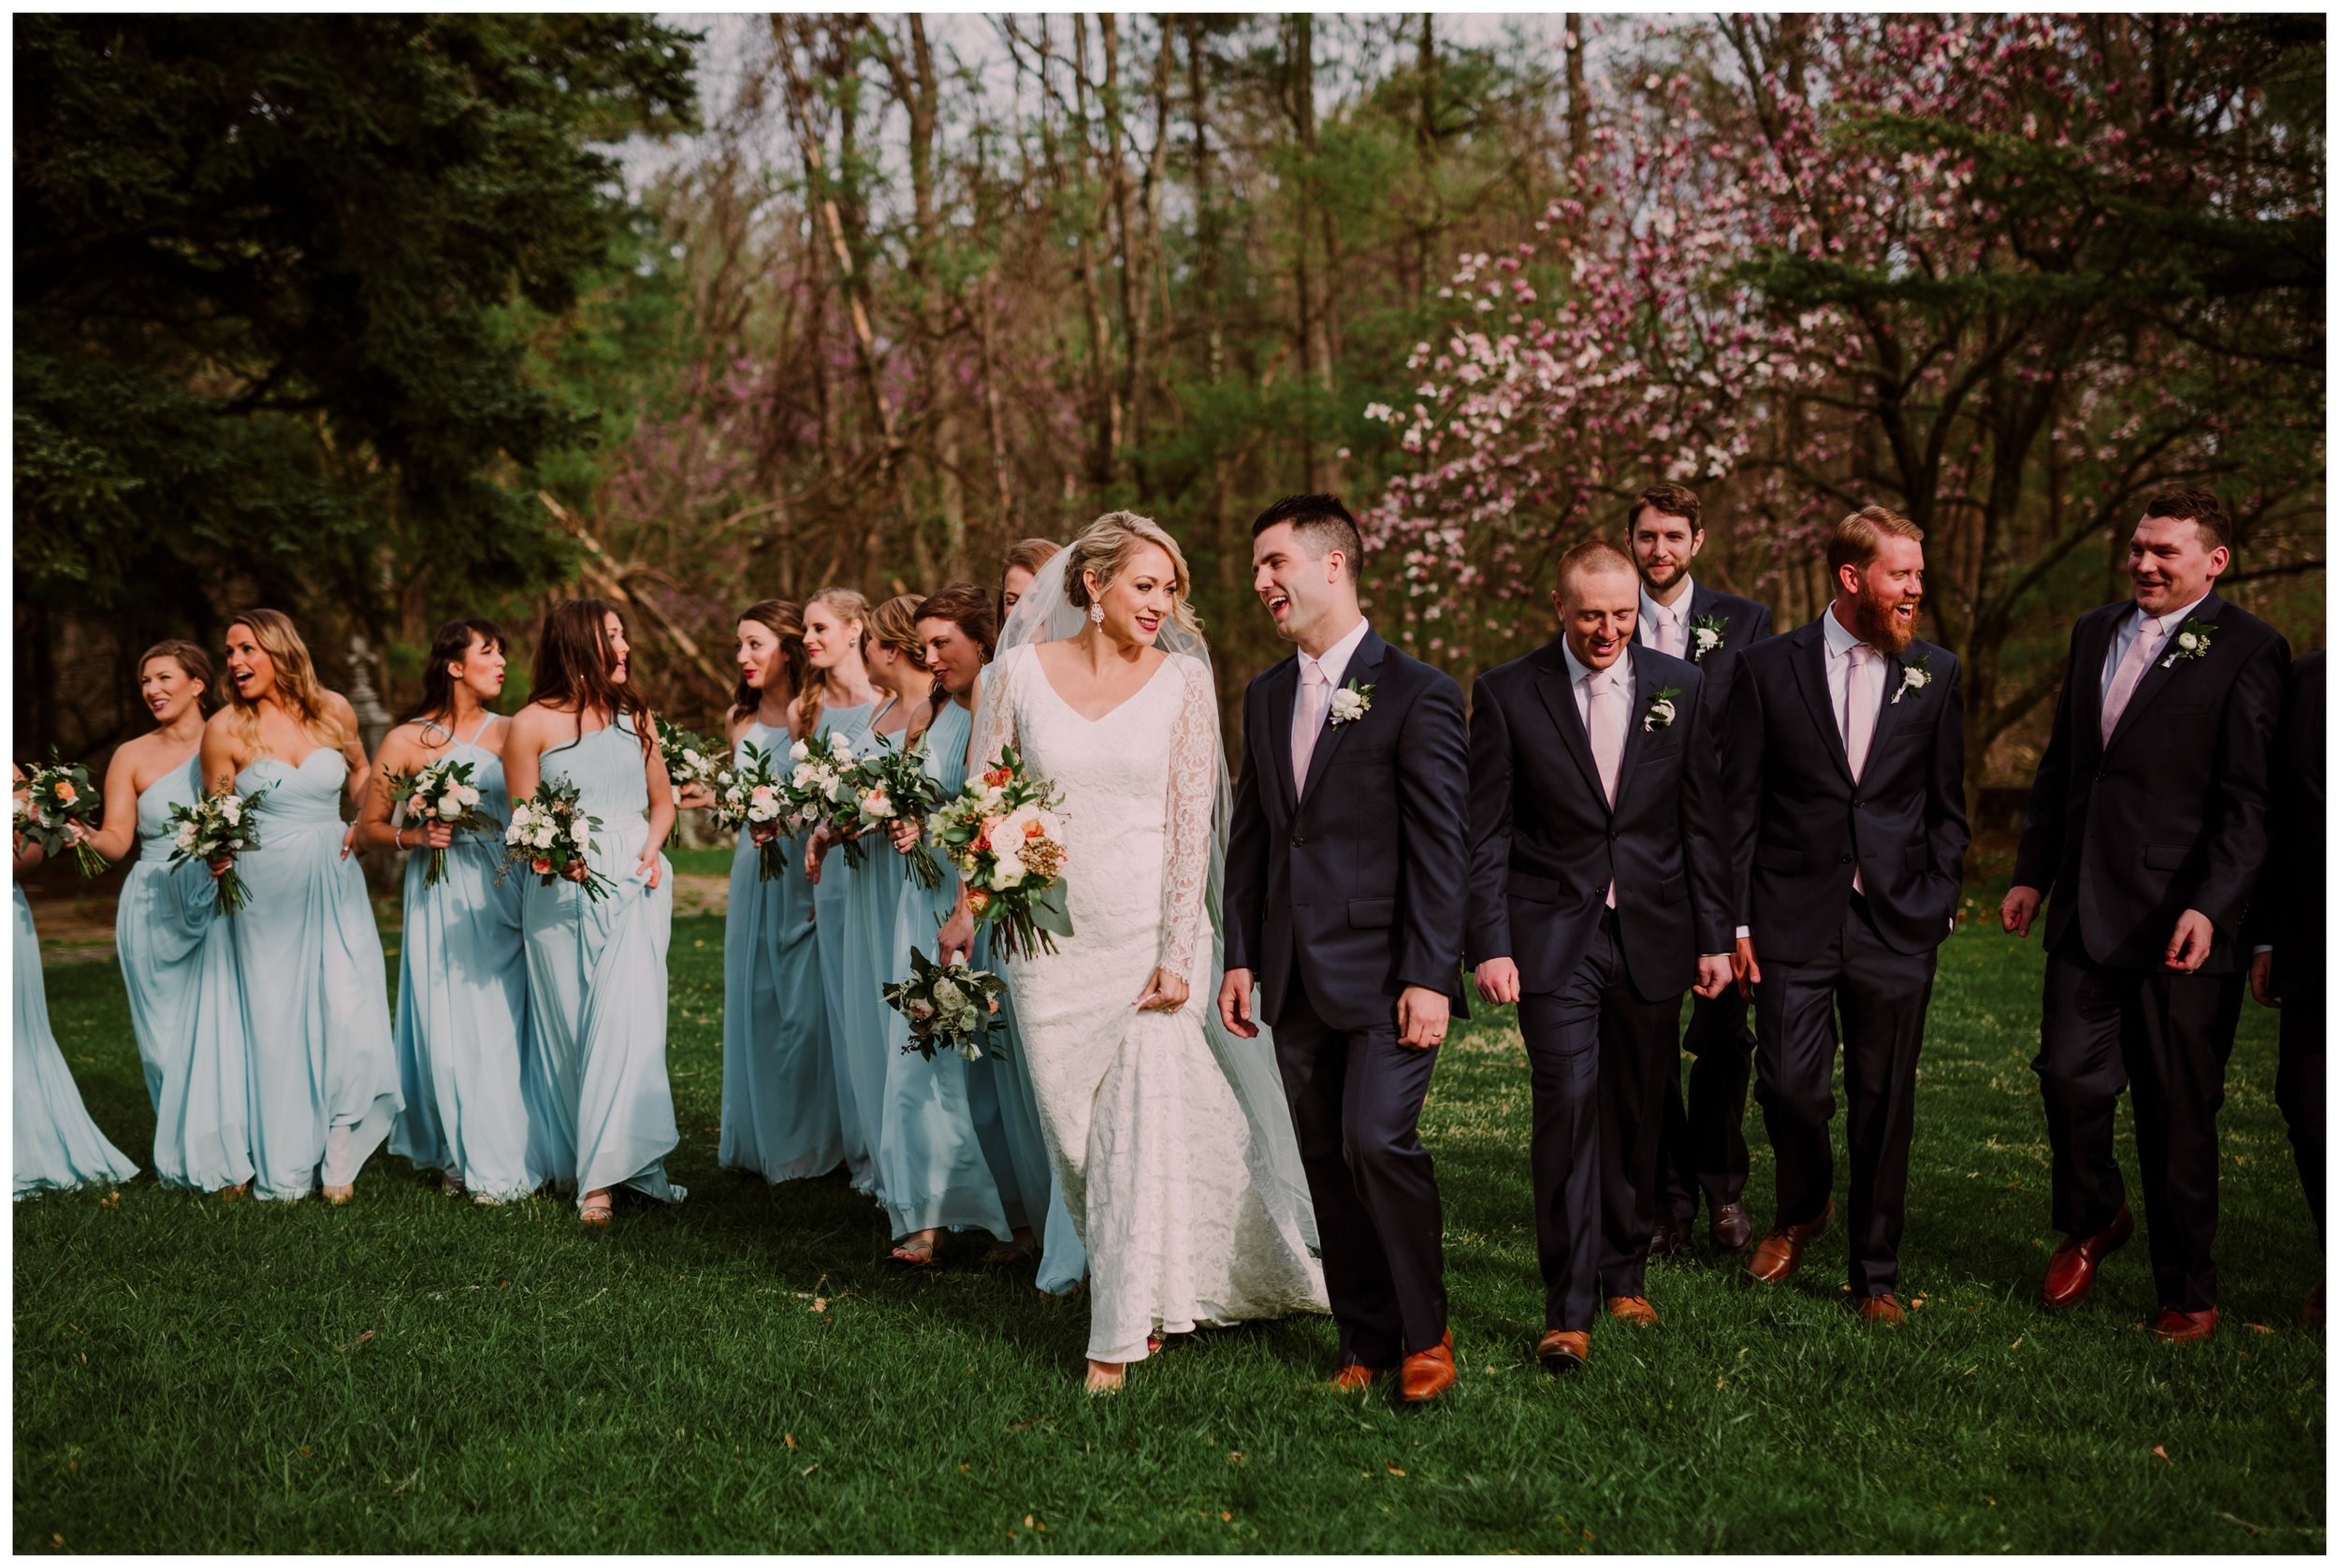 Andrea & Kyle | Traditional Virginia Rust Manor Wedding Highlights | Virginia Wedding Photographer-32.jpg